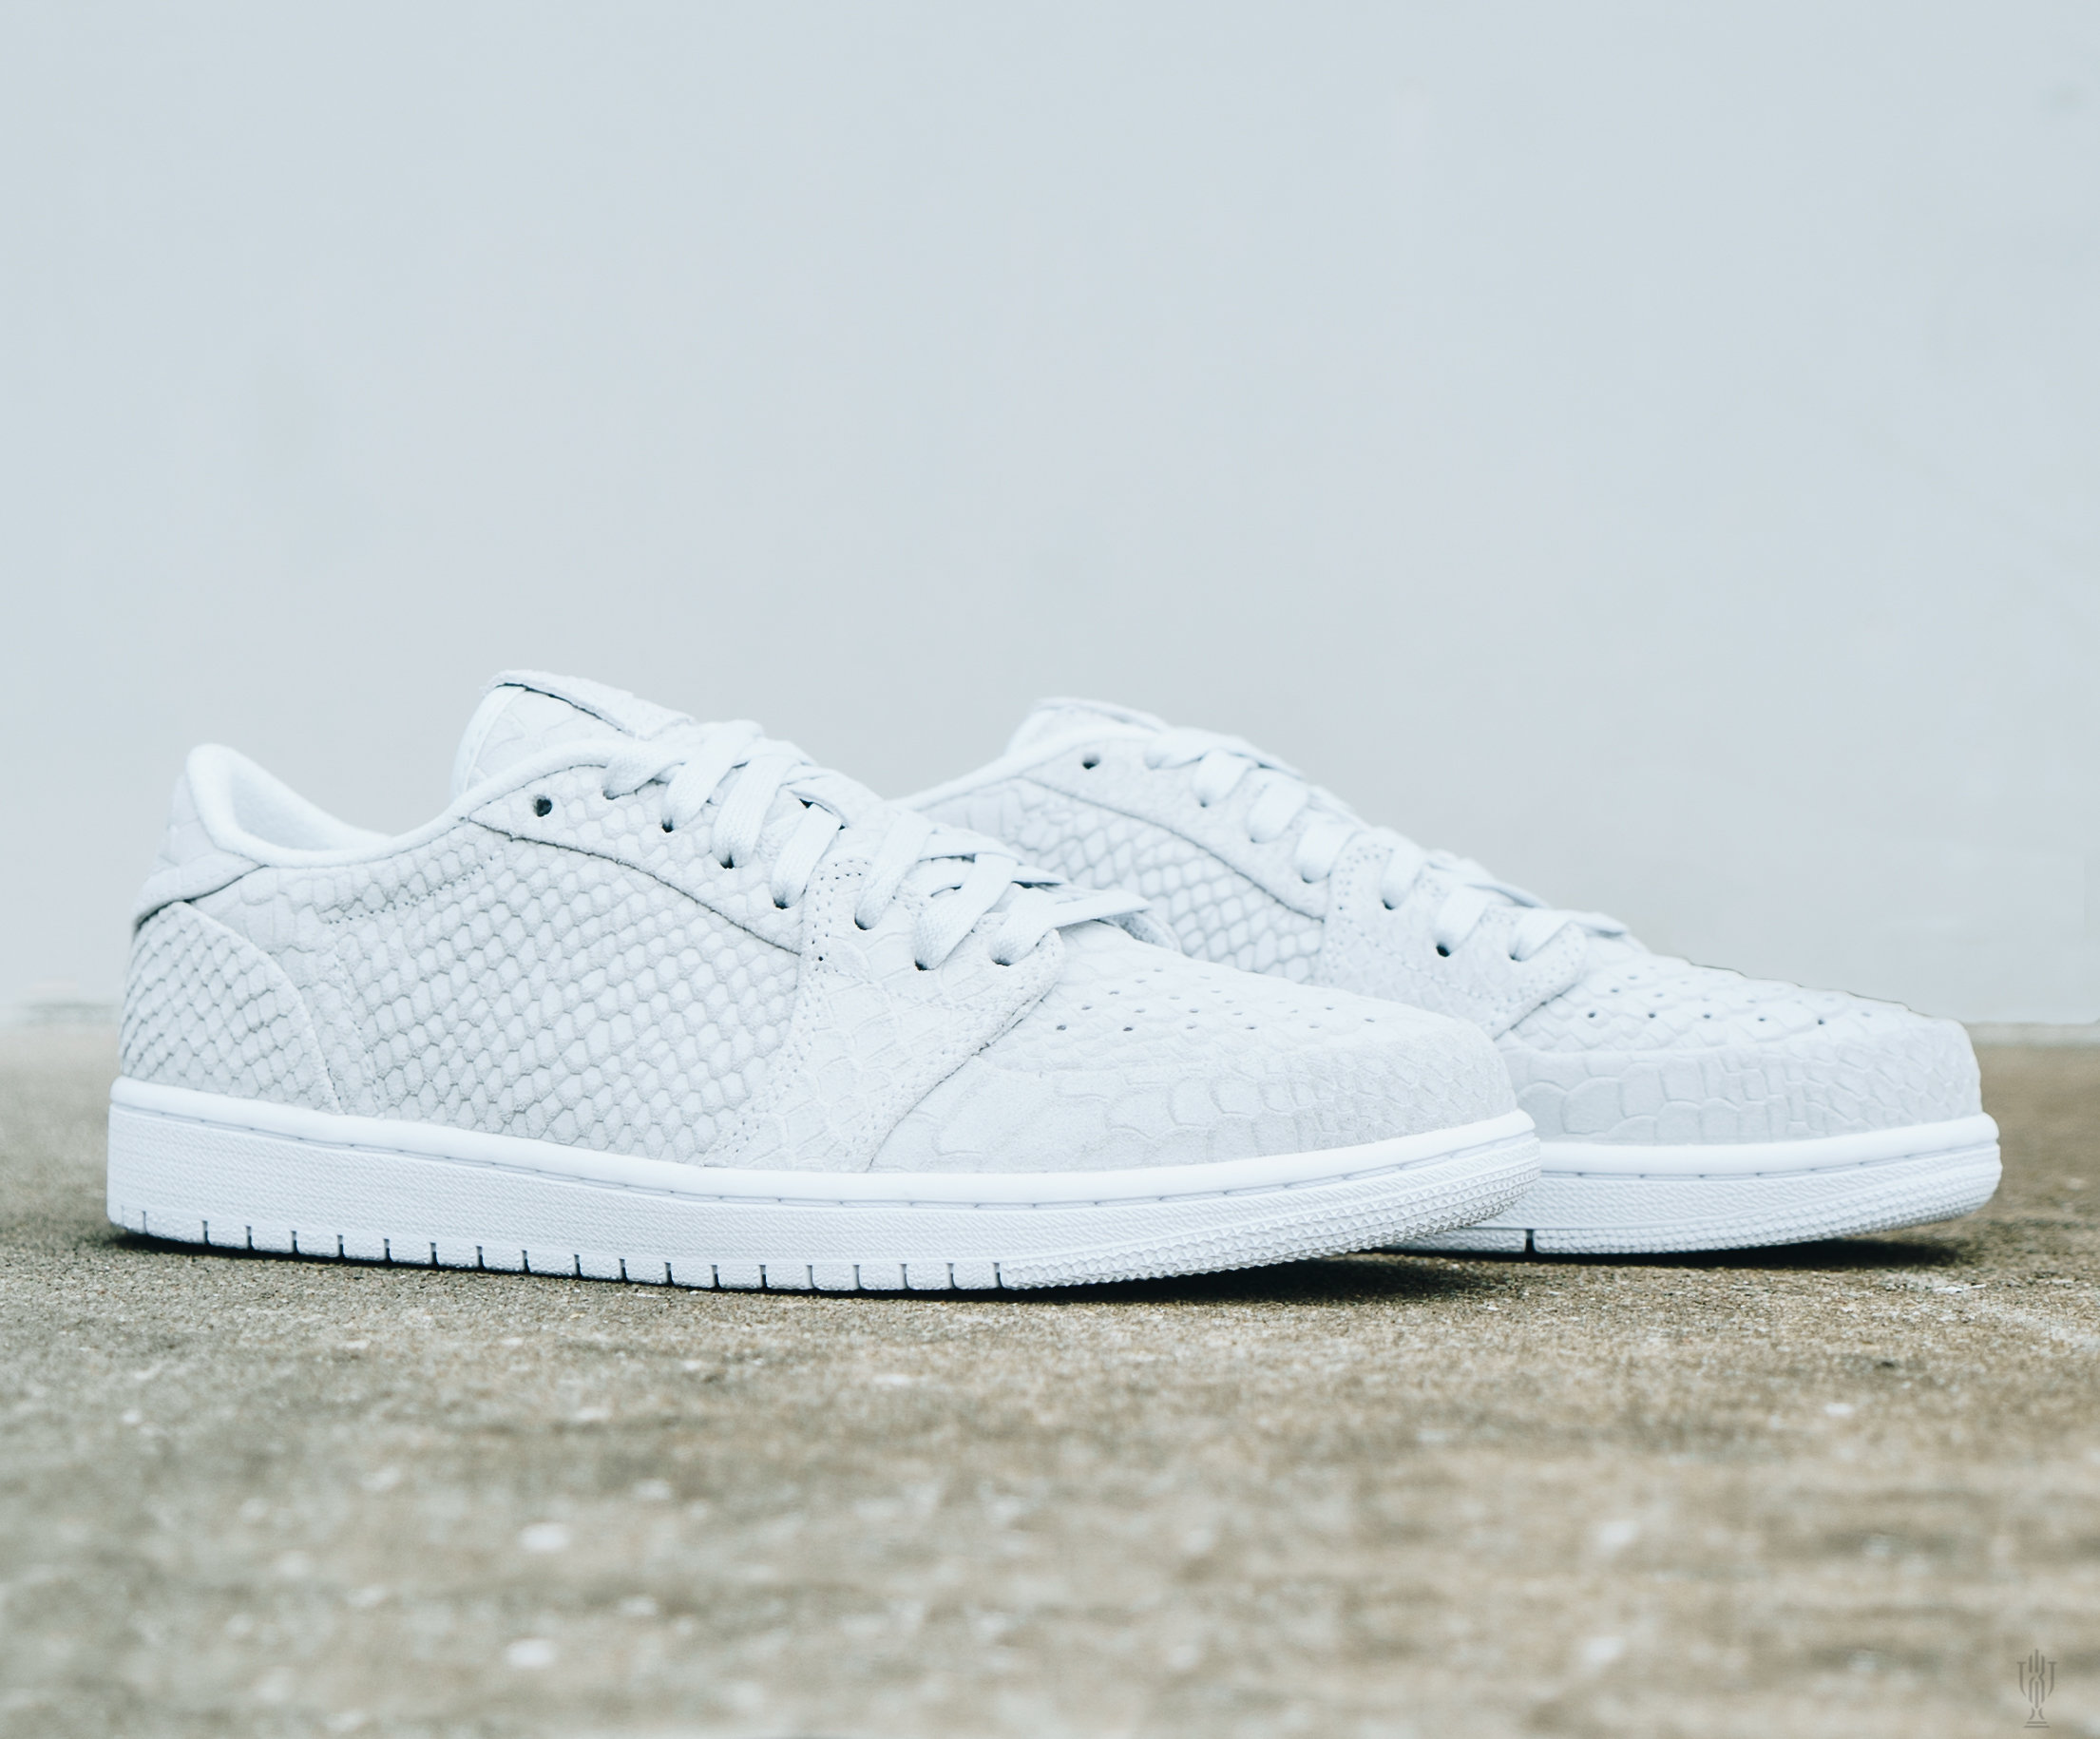 e7ee506bbebf Jordan Brand s foray into more premium lifestyle sneakers continues with Air  Jordan 1 Low Snakeskin. The Swooshless take on this OG silhouette goes with  all ...